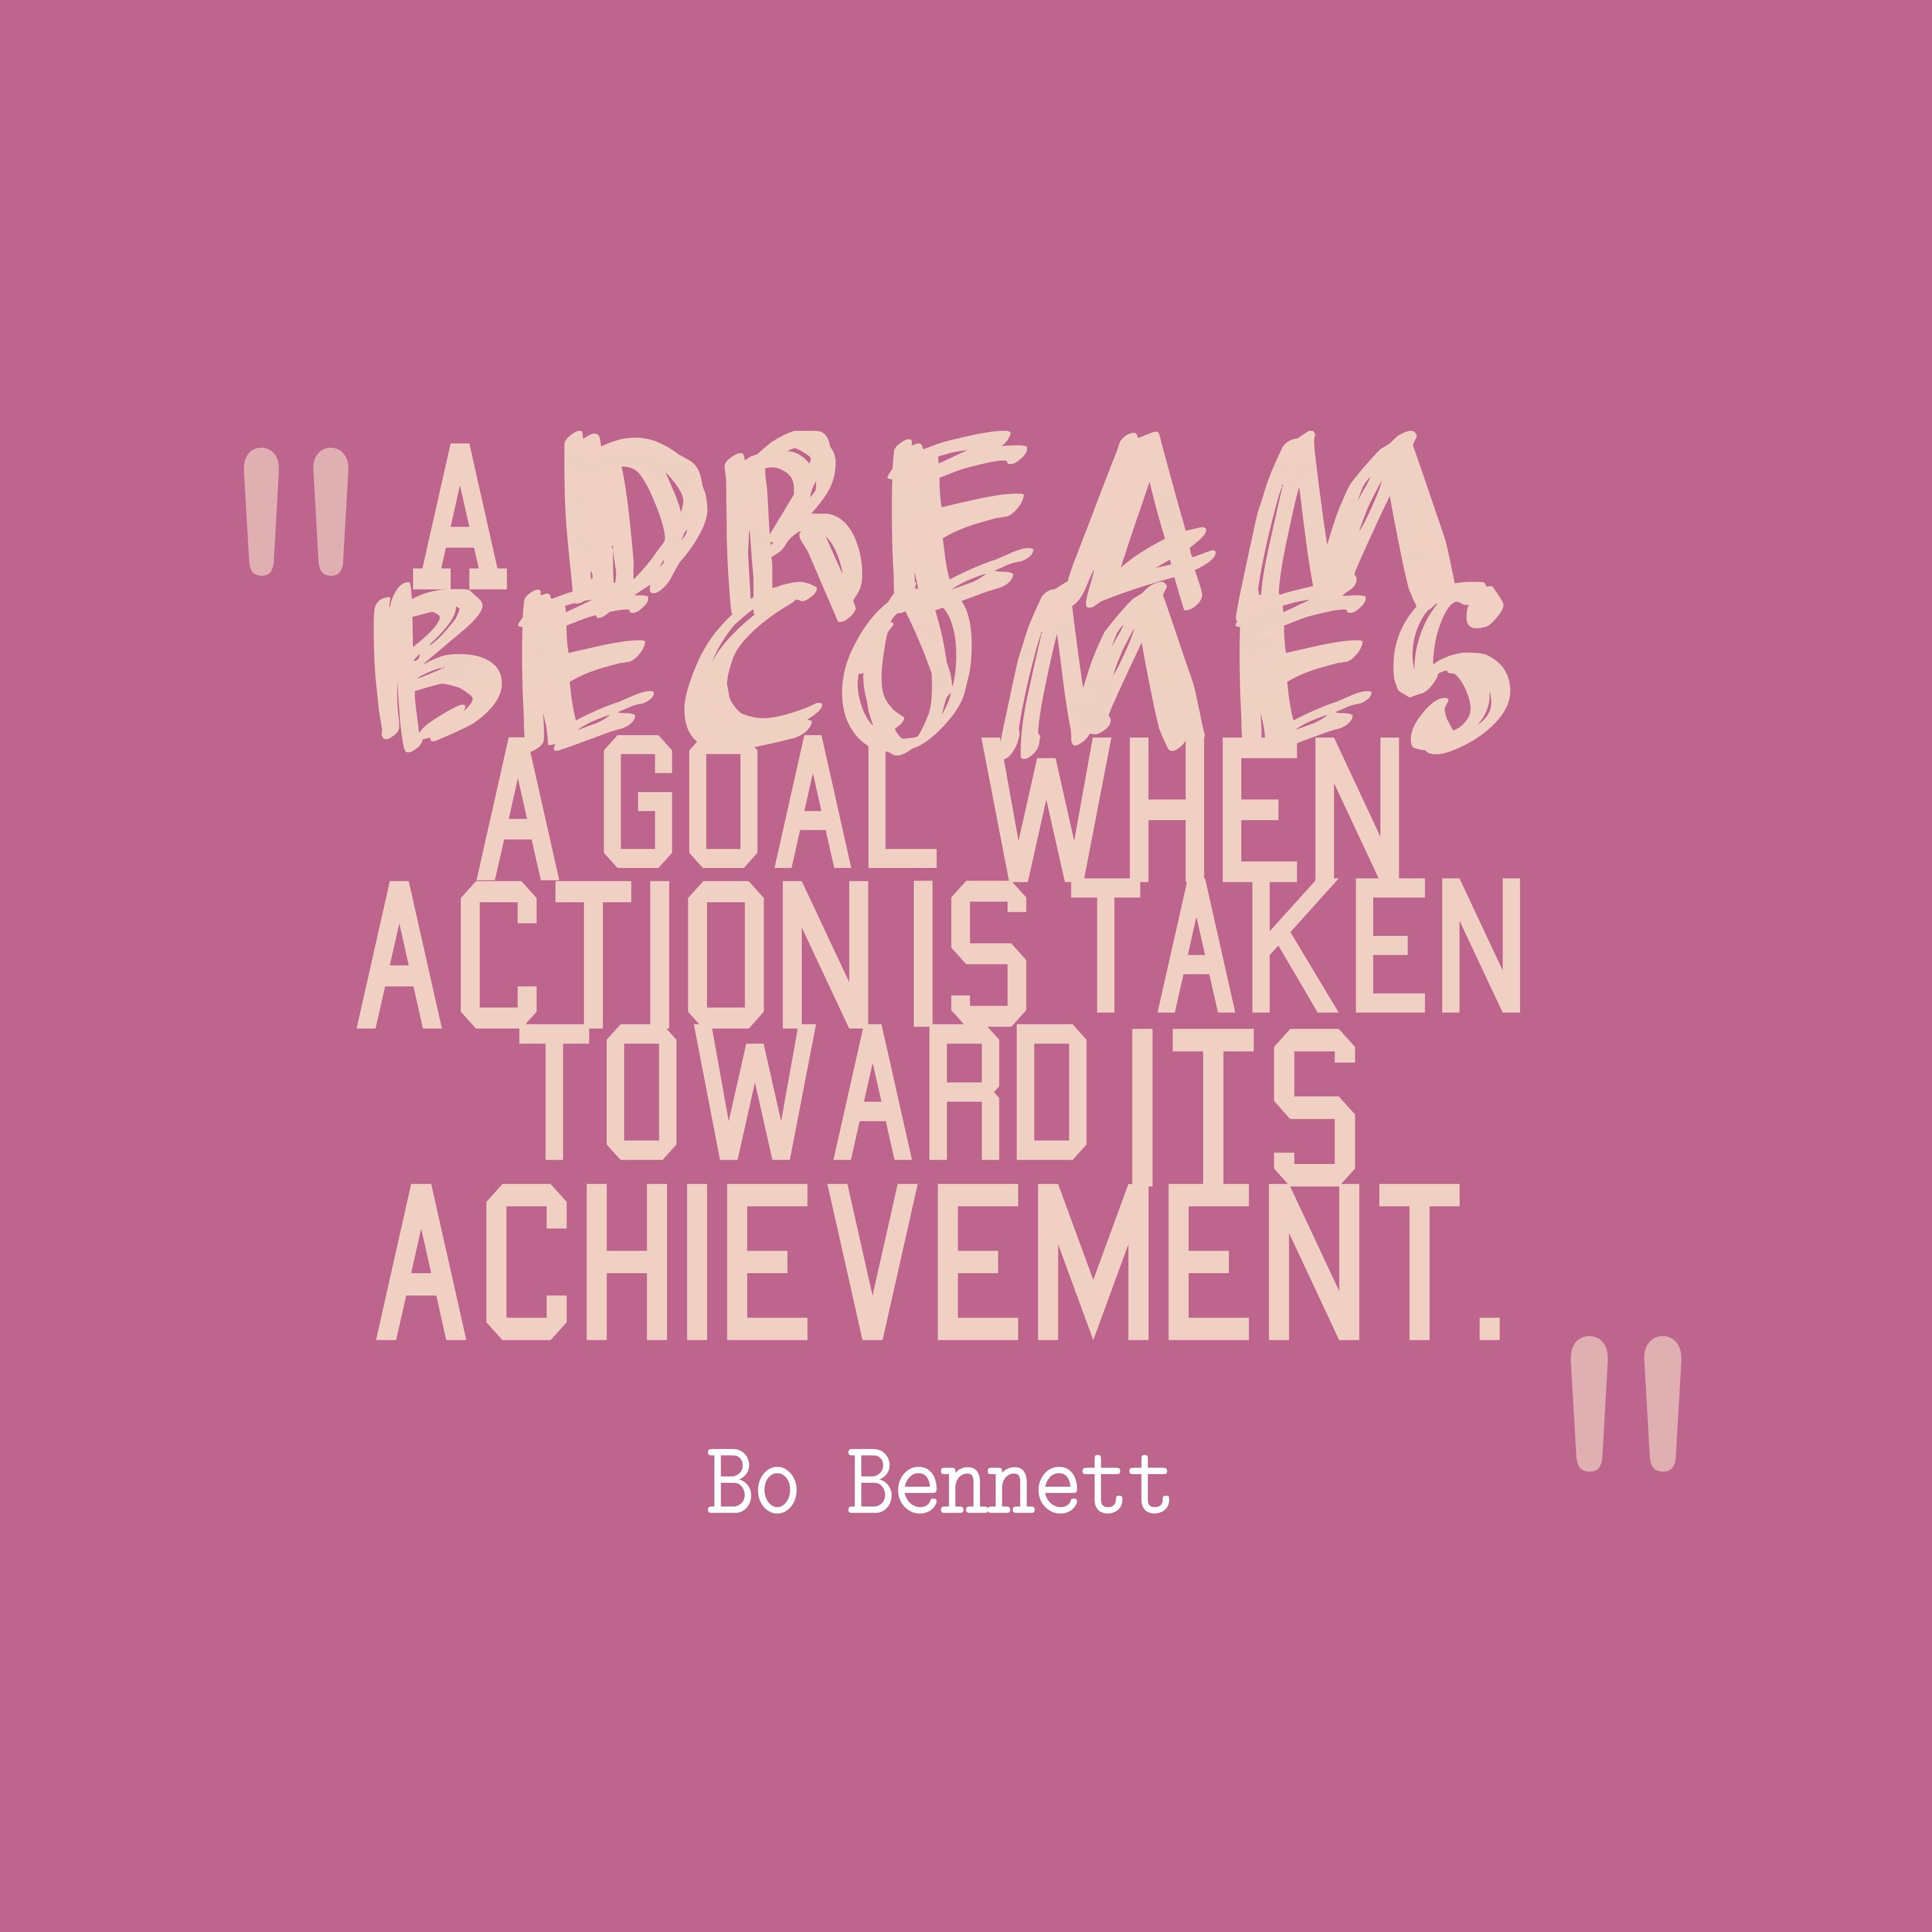 Picture Bo Bennett Quote About Goal - Quotes about achieving goals and dreams